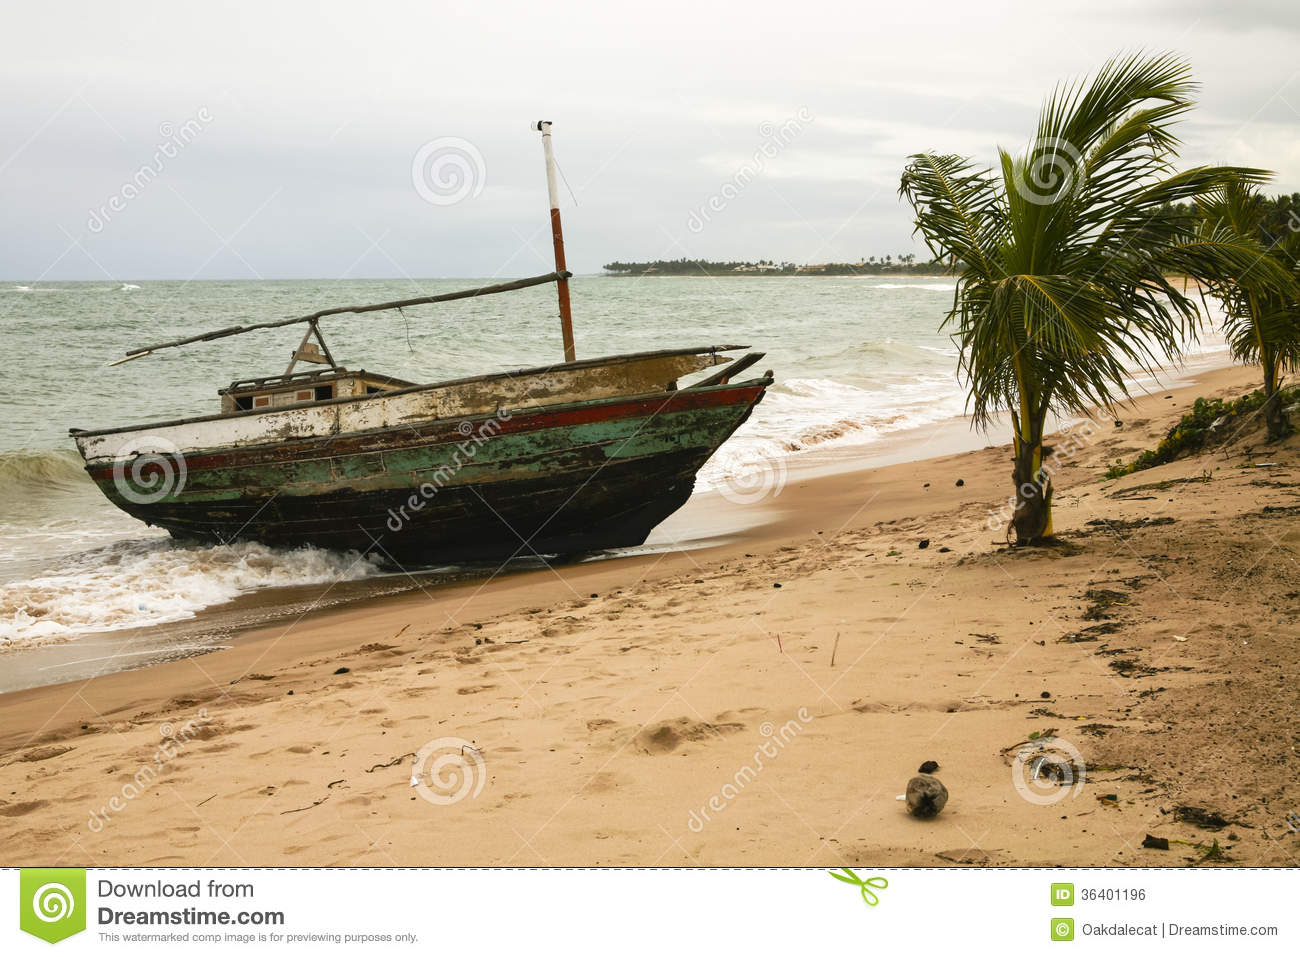 Palm Beach Tan Prices >> Shipwrecked, Worn Boat In A Storm Royalty Free Stock Image ...